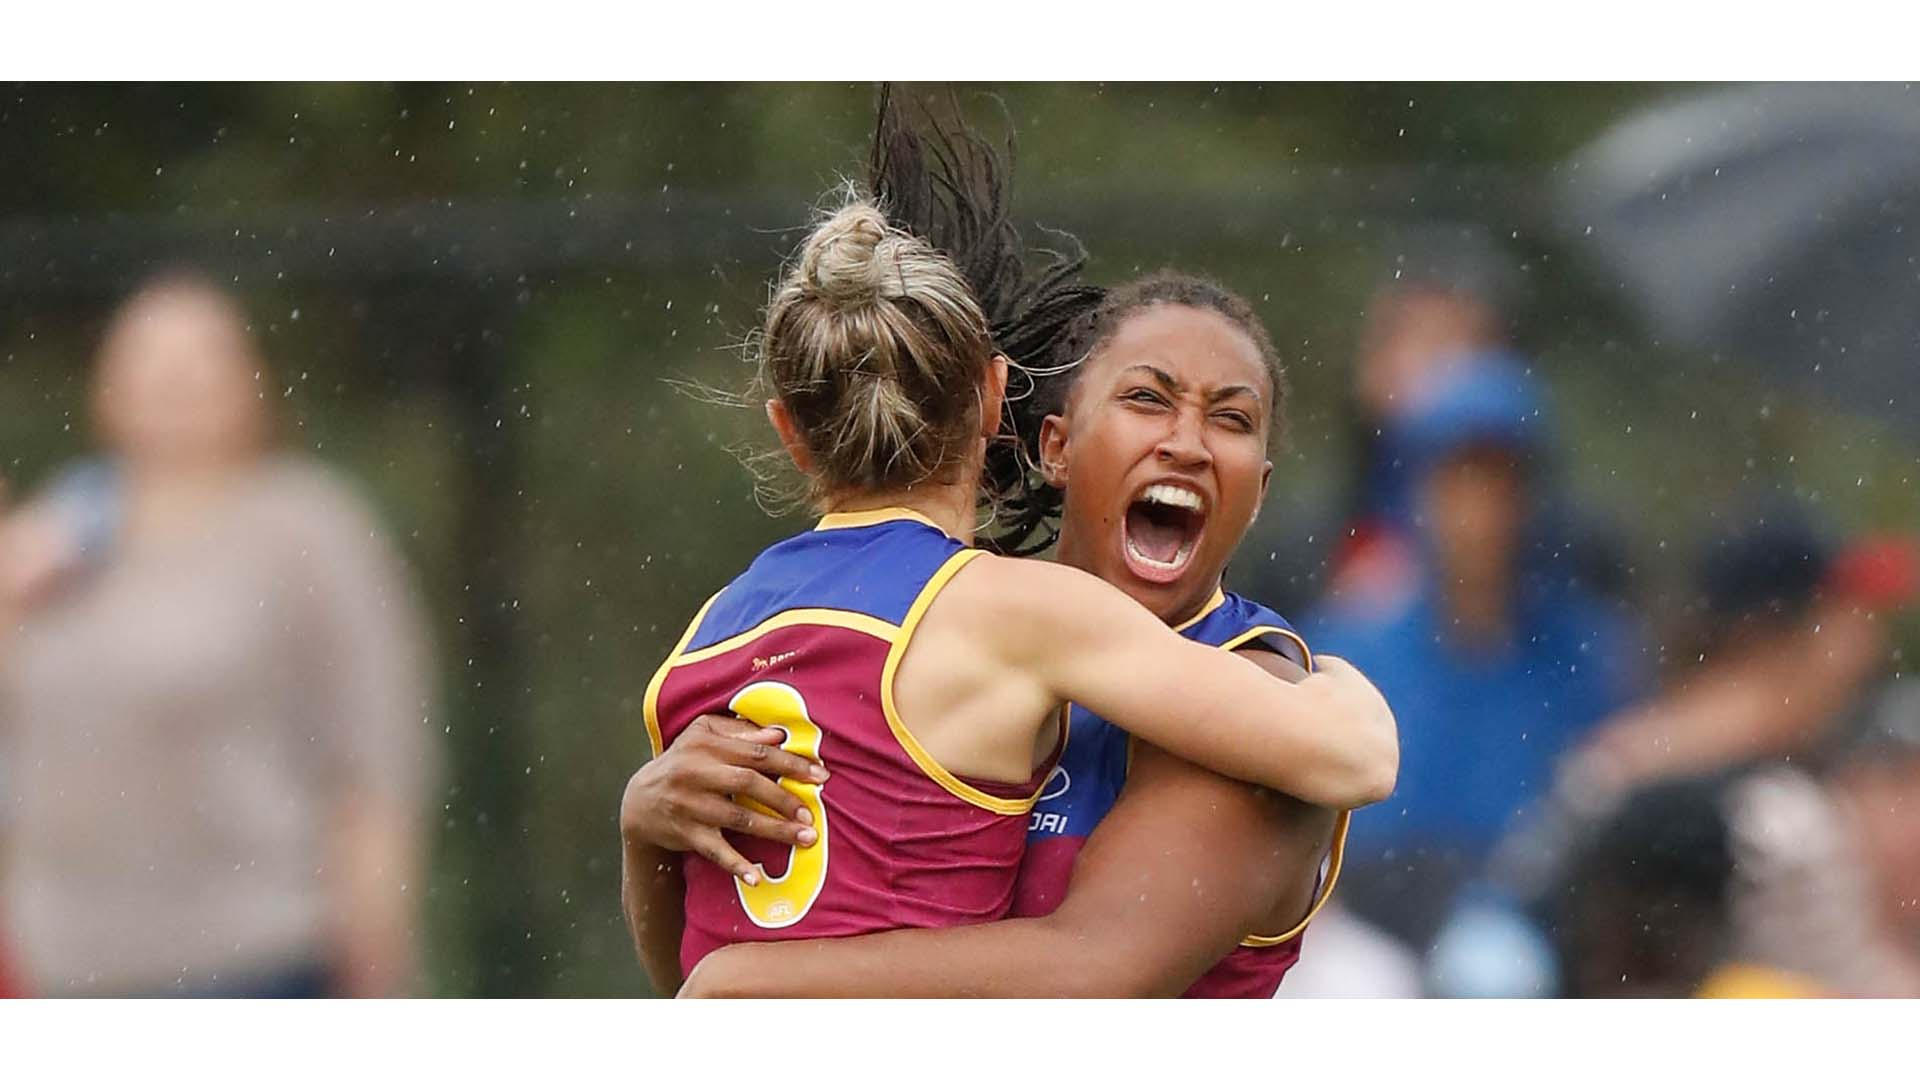 MELBOURNE, AUSTRALIA - FEBRUARY 5: Kate McCarthy and Sabrina Frederick-Traub of the Lions (right) celebrate during the 2017 AFLW Round 01 match between the Melbourne Demons and the Brisbane Lions at Casey Fields on February 5, 2017 in Melbourne, Australia. (Photo by Michael Willson/AFL Media)